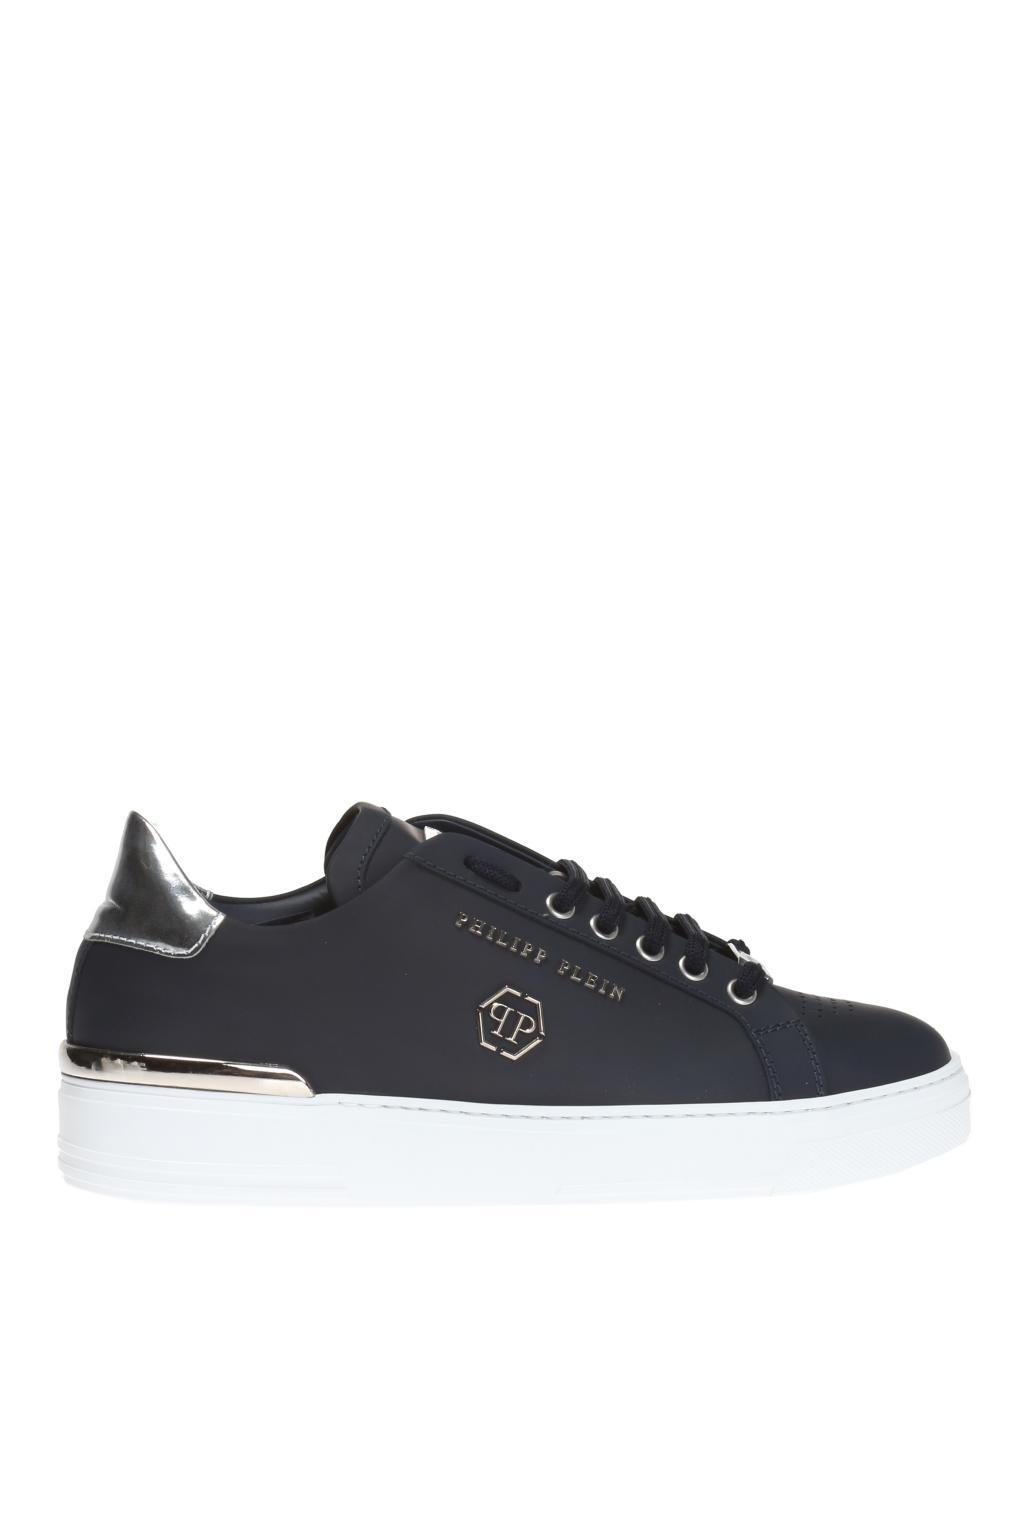 Over Border sneakers - Blue Philipp Plein MuGOlY